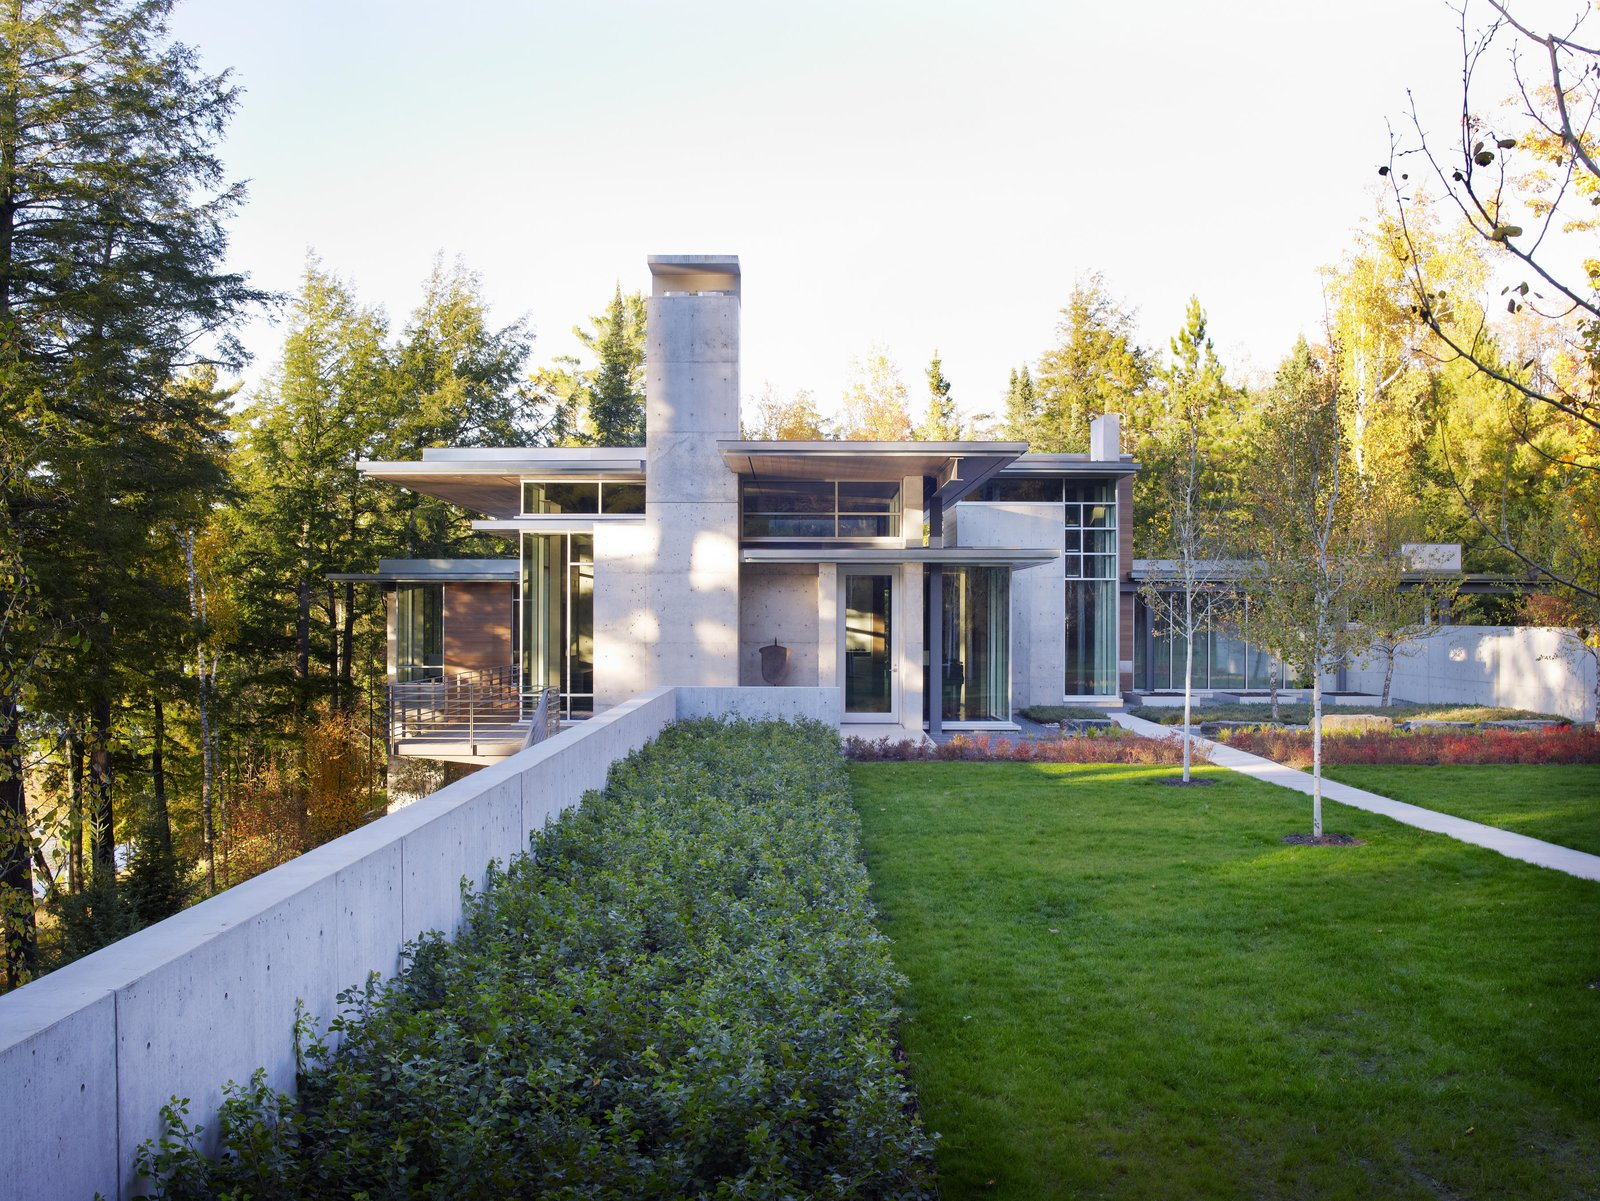 Outdoor, Grass, Shrubs, and Back Yard Northwoods House  Northwoods House by Olson Kundig